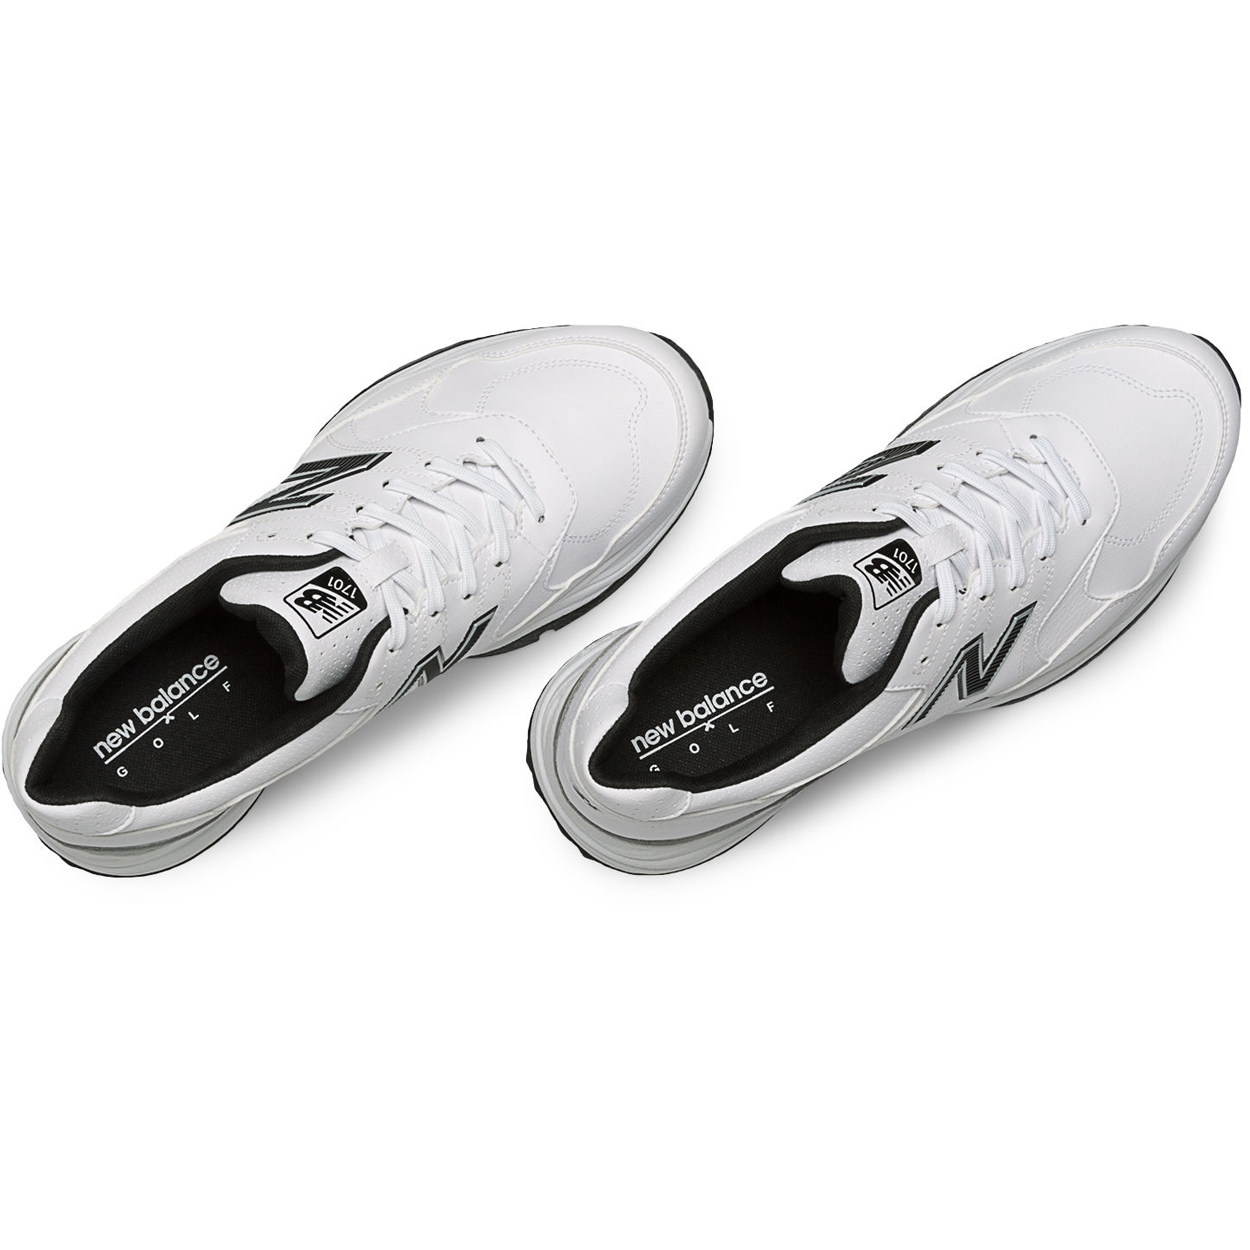 New-Balance-Men-039-s-1701-Golf-Shoe-Brand-New thumbnail 9